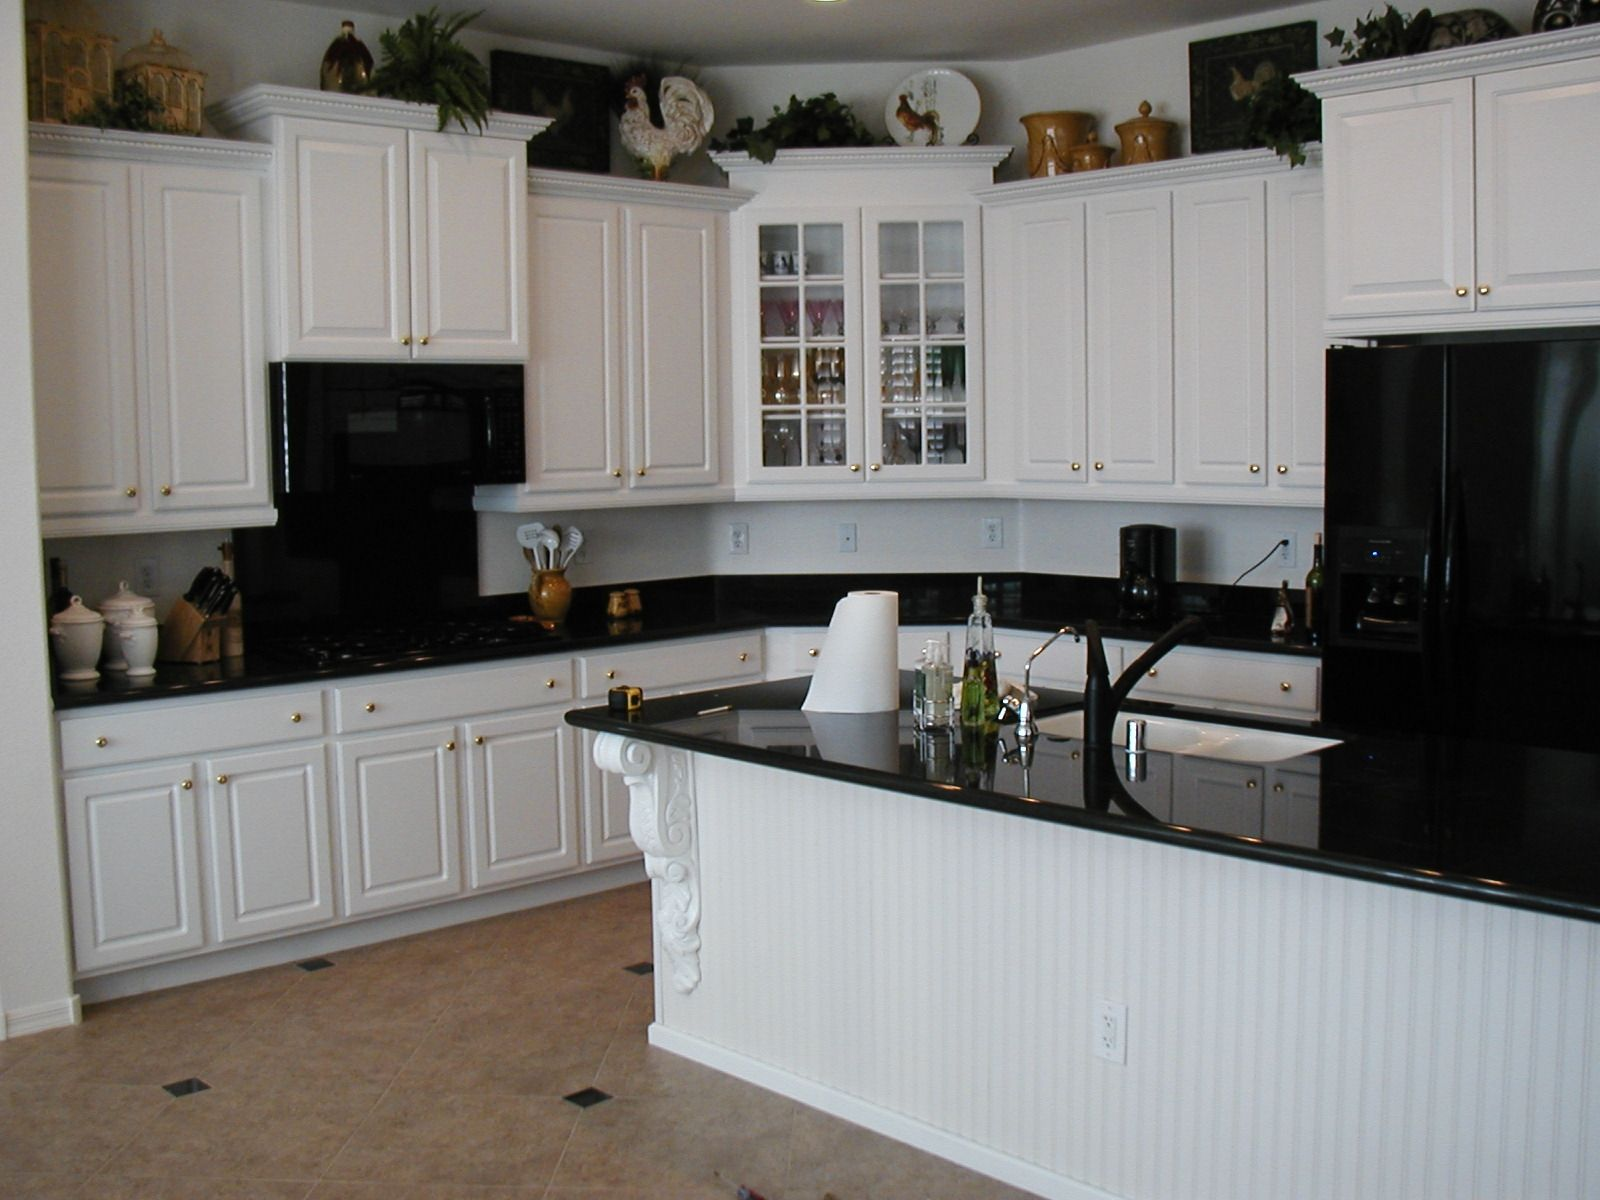 creamy white kitchen cabinets with black appliances